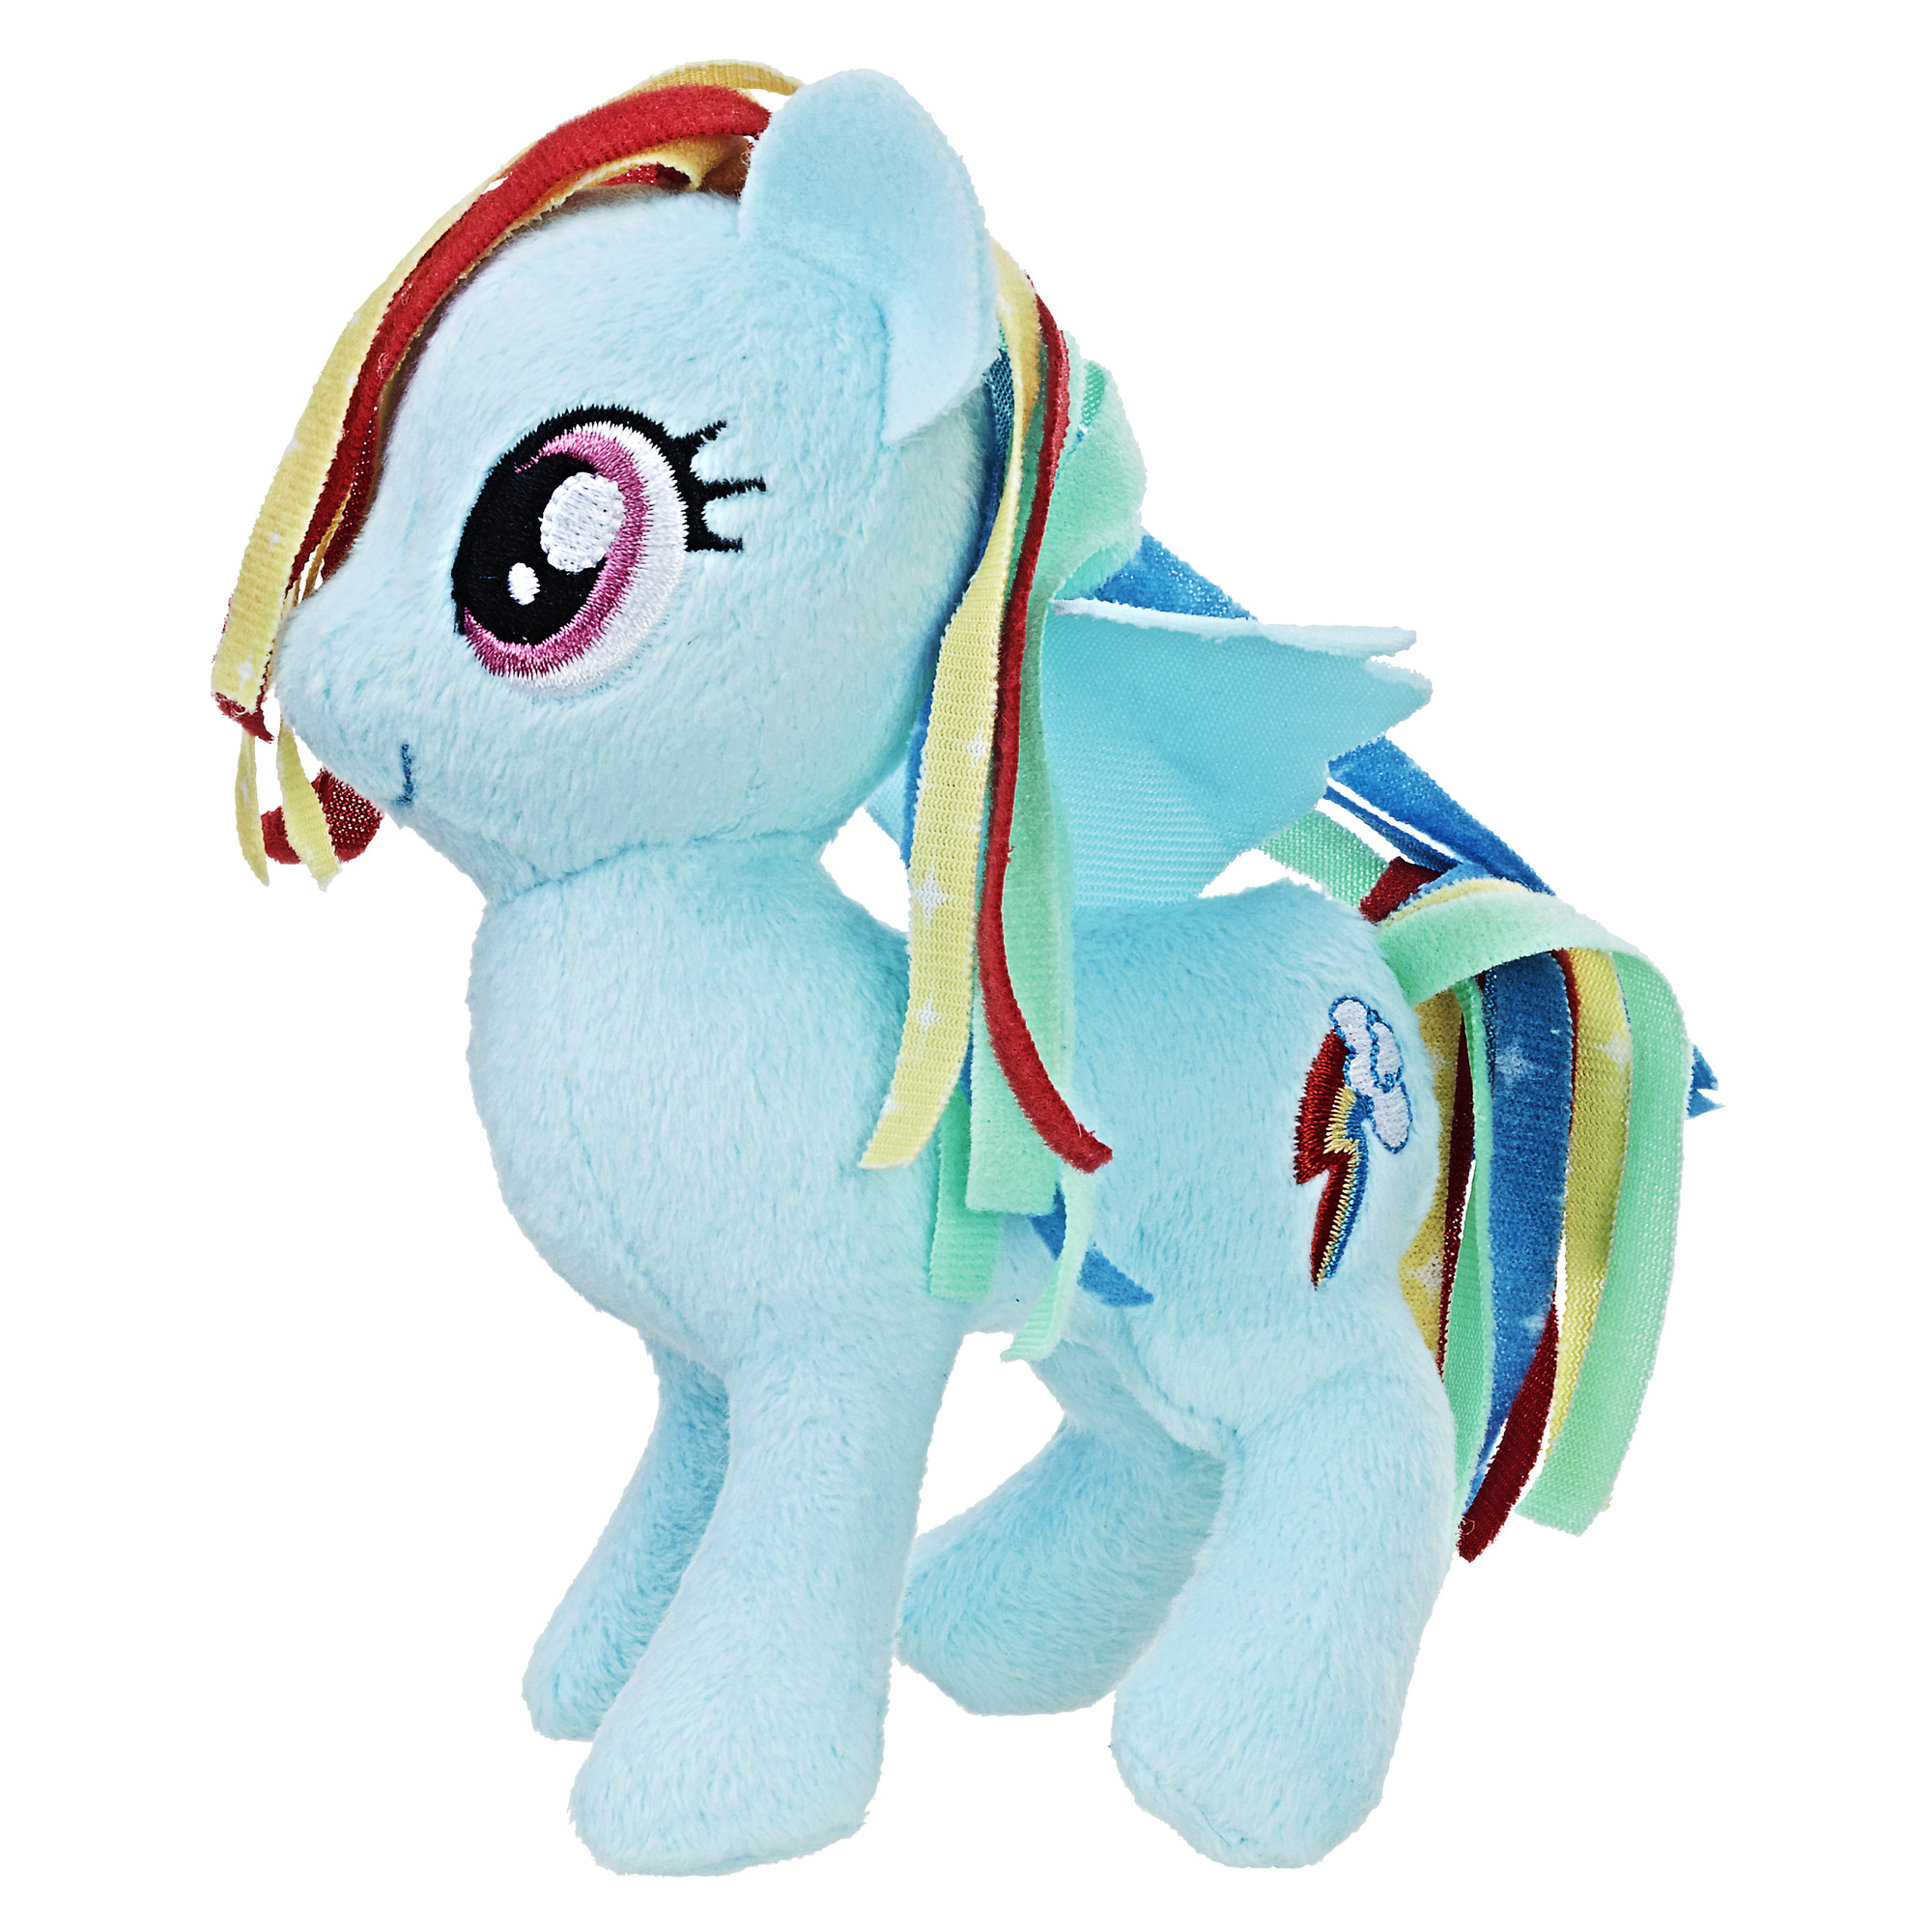 My Little Pony Friendship is Magic Rainbow Dash Small Plush by Hasbro